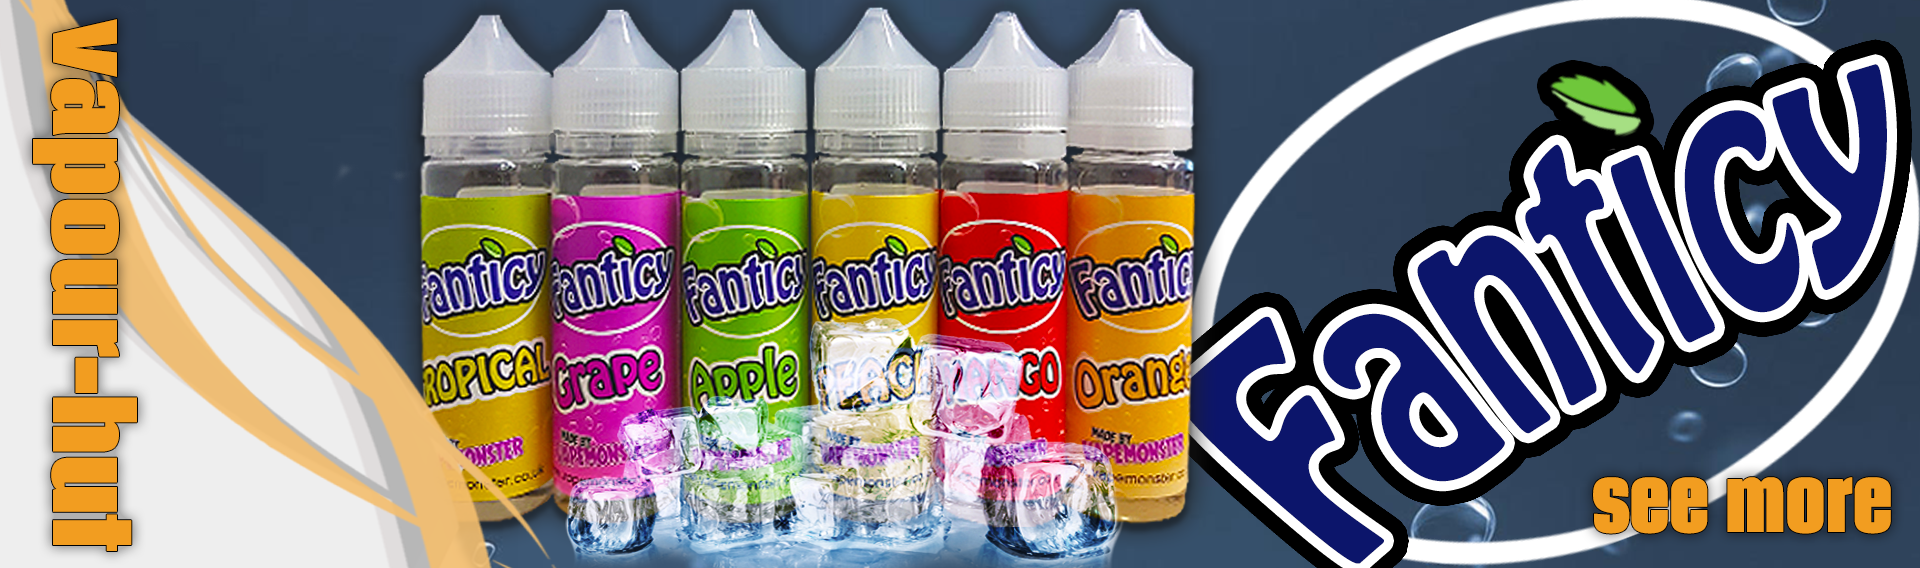 Fanticy Shortfill E-Liquid at Vapour Hut